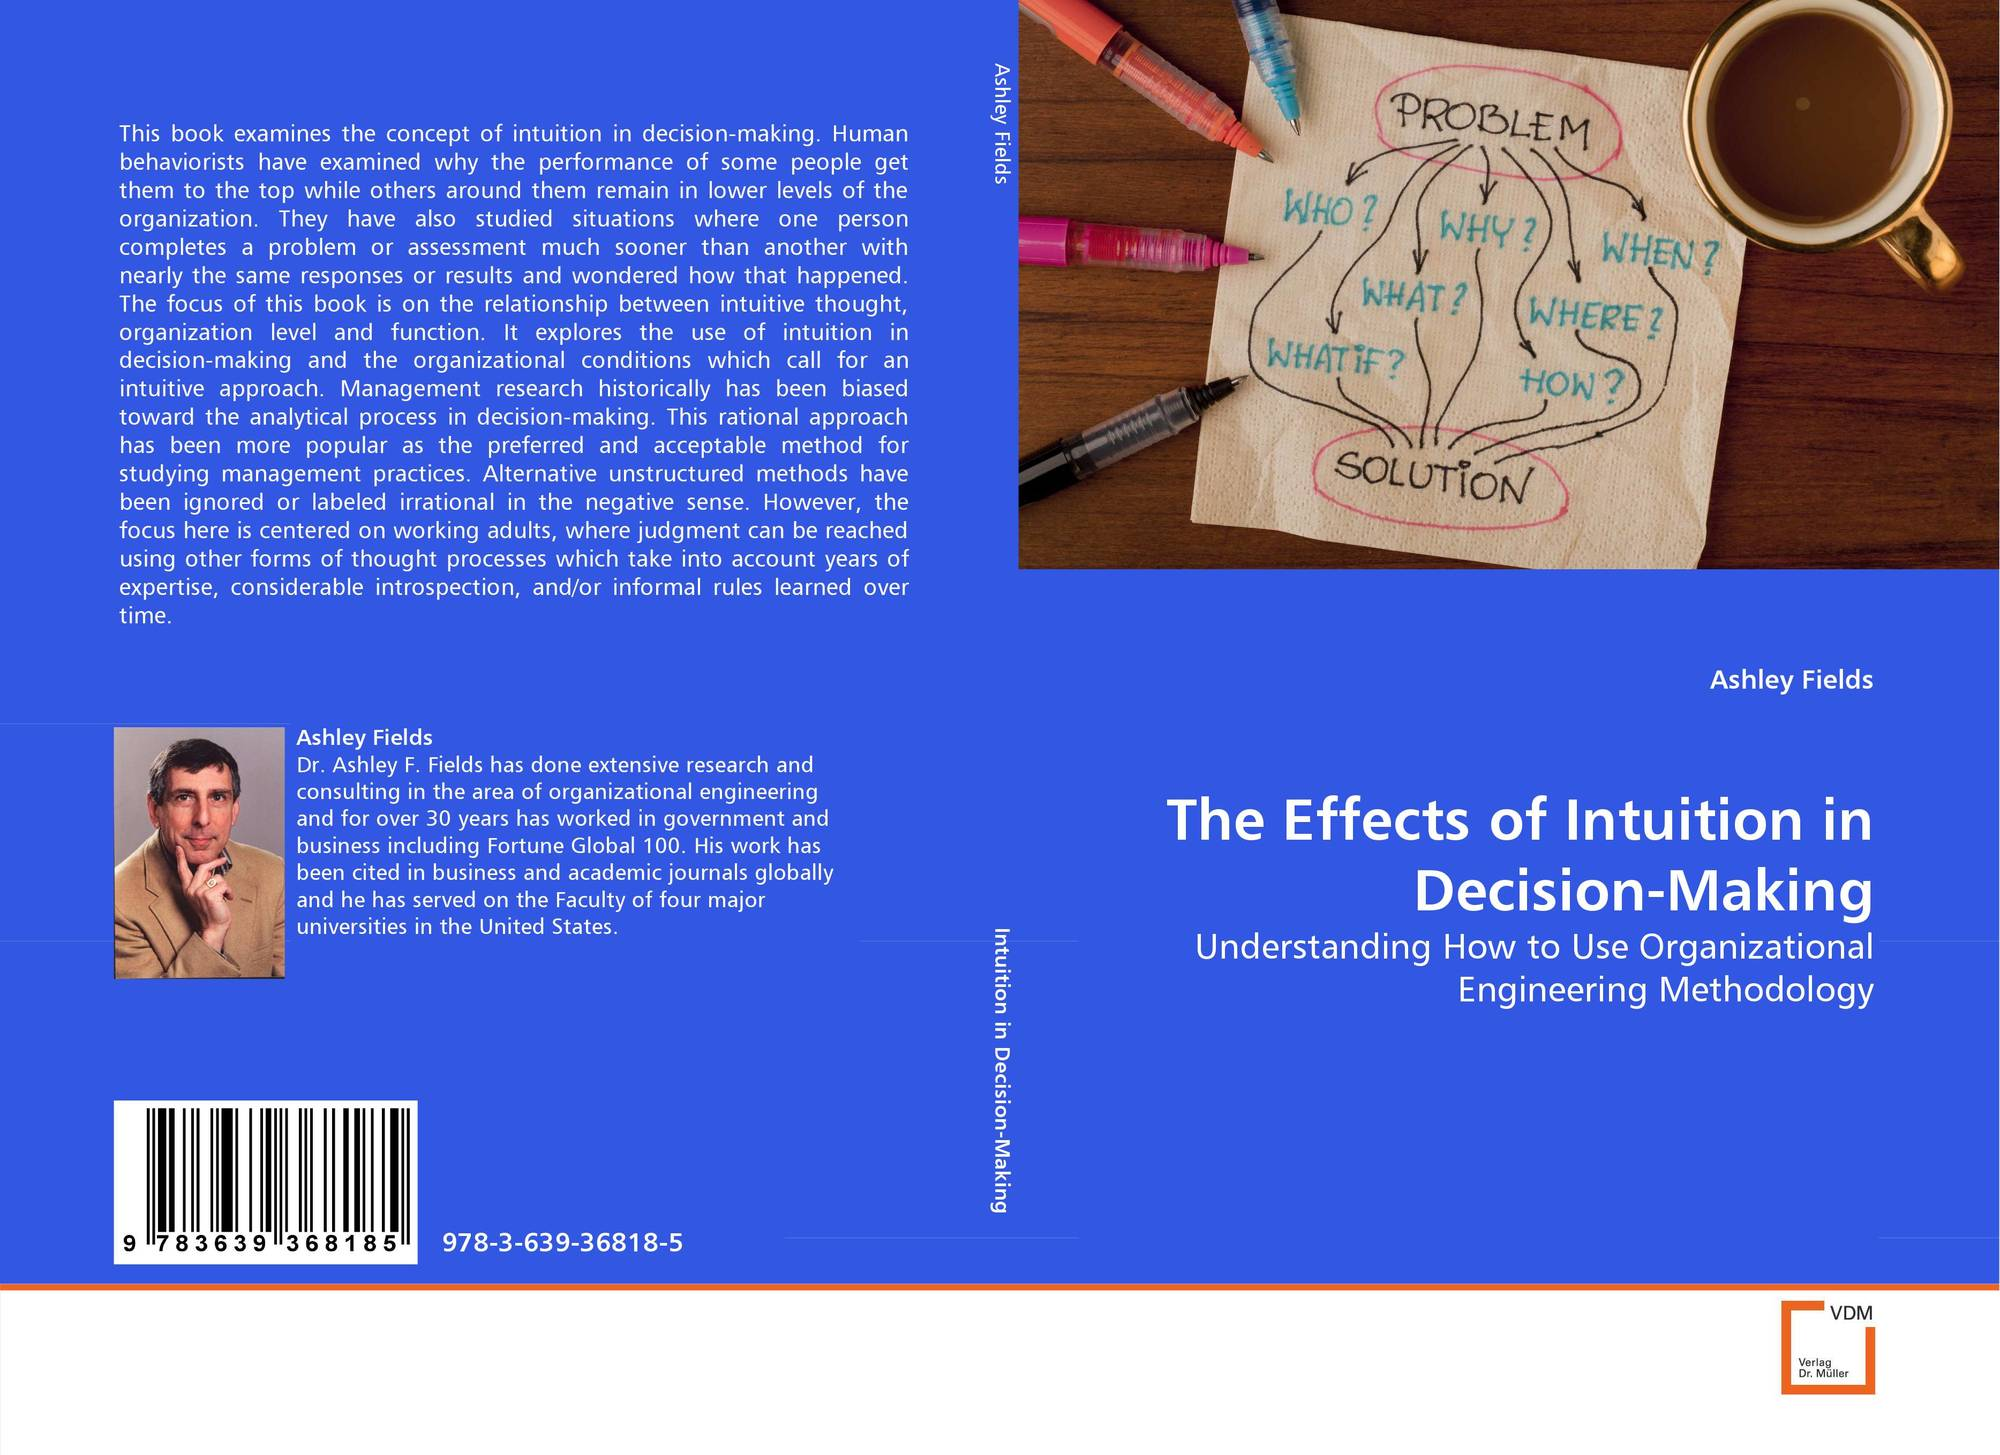 individual decision making in organization is an irrational process